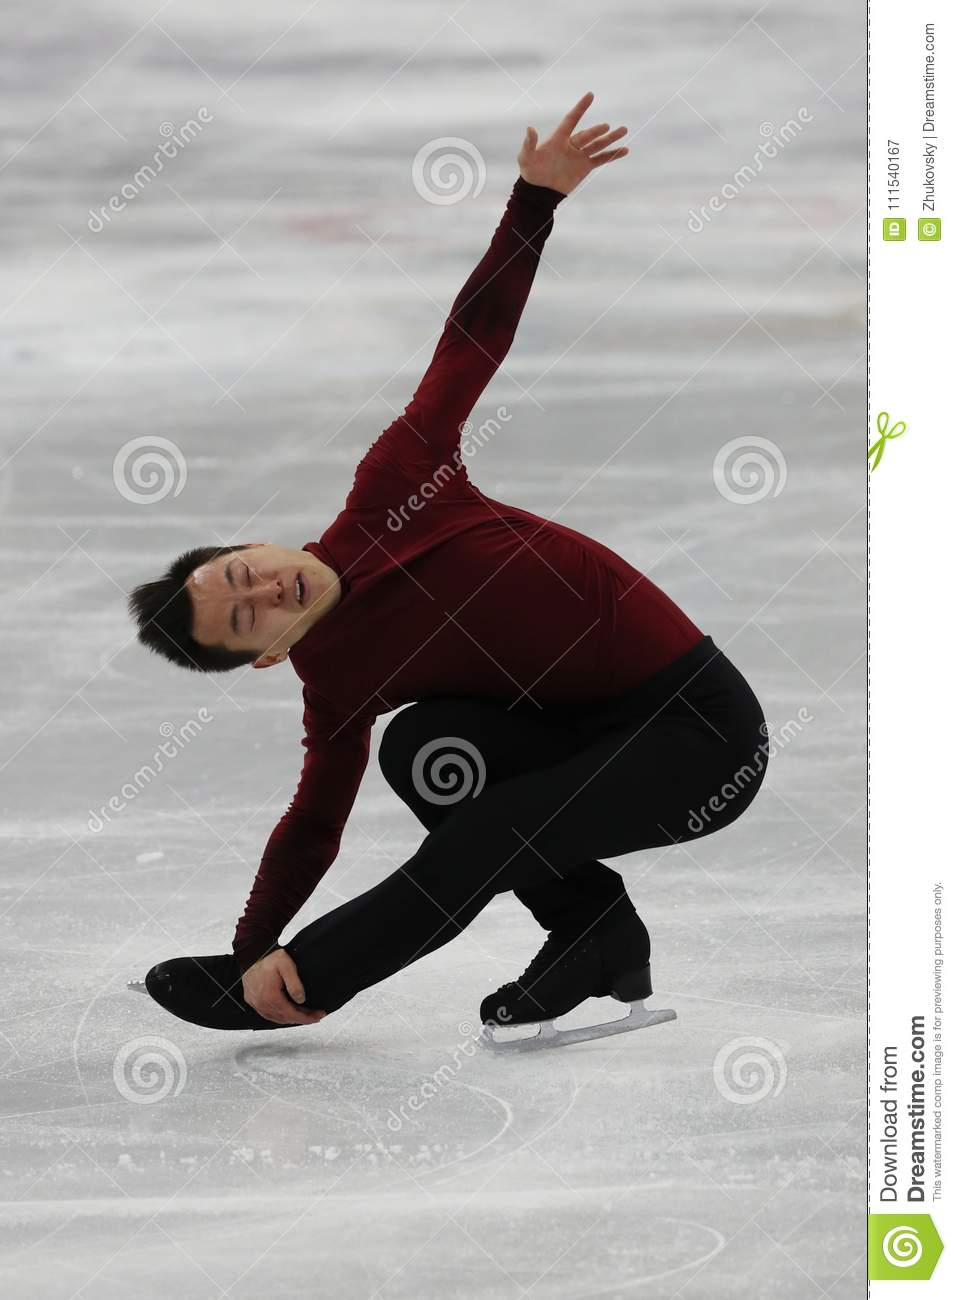 Olympic champion Patrick Chan of Canada performs in the Team Event Men Single Skating Free Skating at the 2018 Winter Olympics